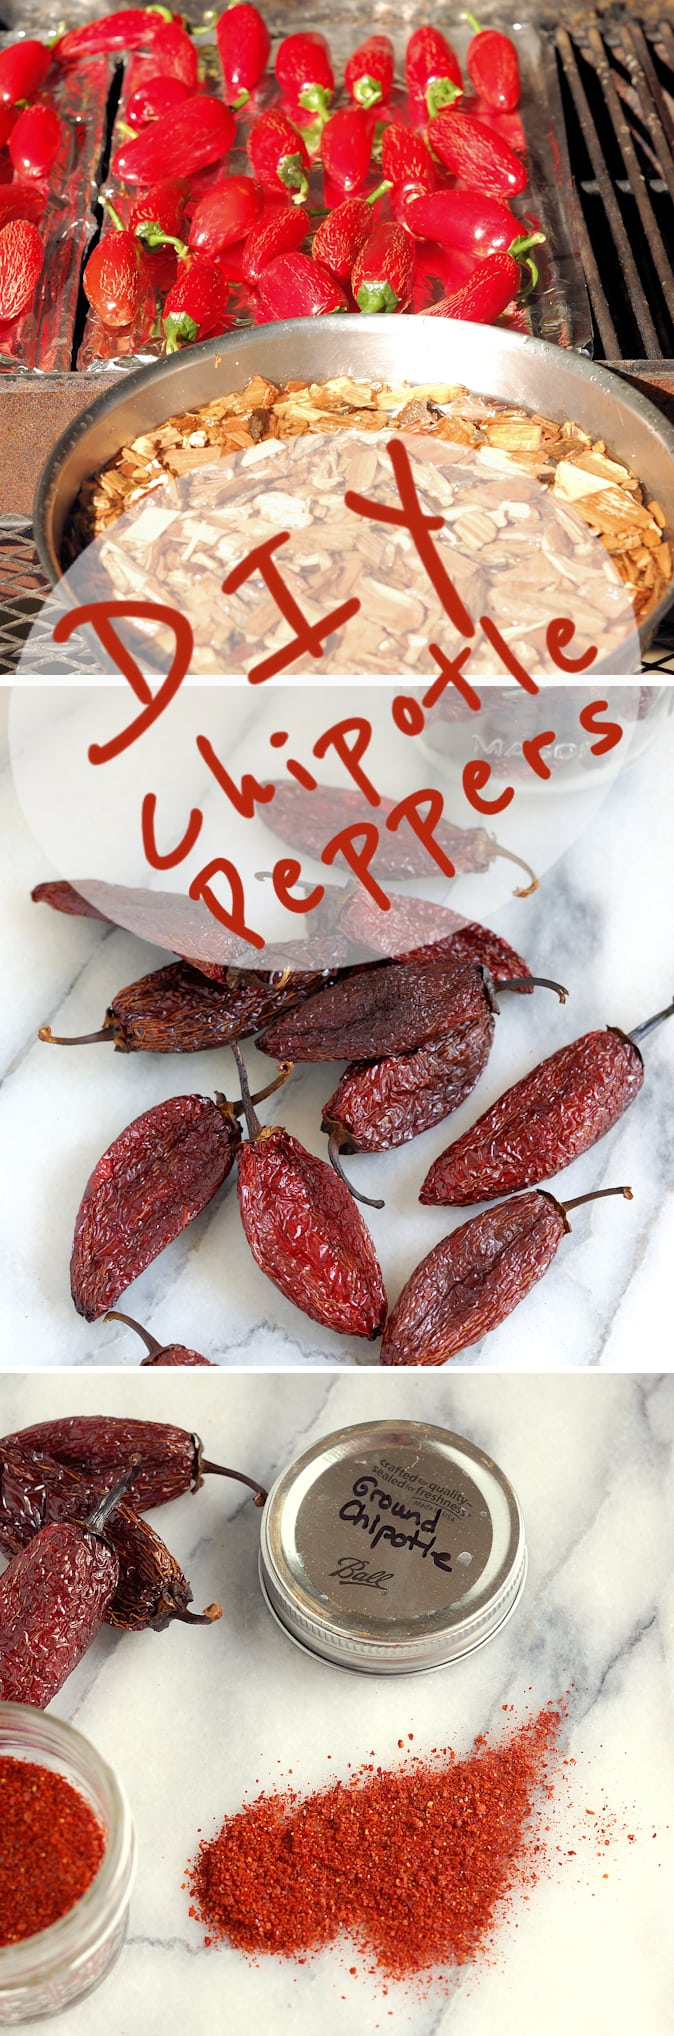 Make your own Chipotle Peppers. There is just one ingredient in this recipe, fresh jalapeno peppers. #howto #diy #homemade #smoked